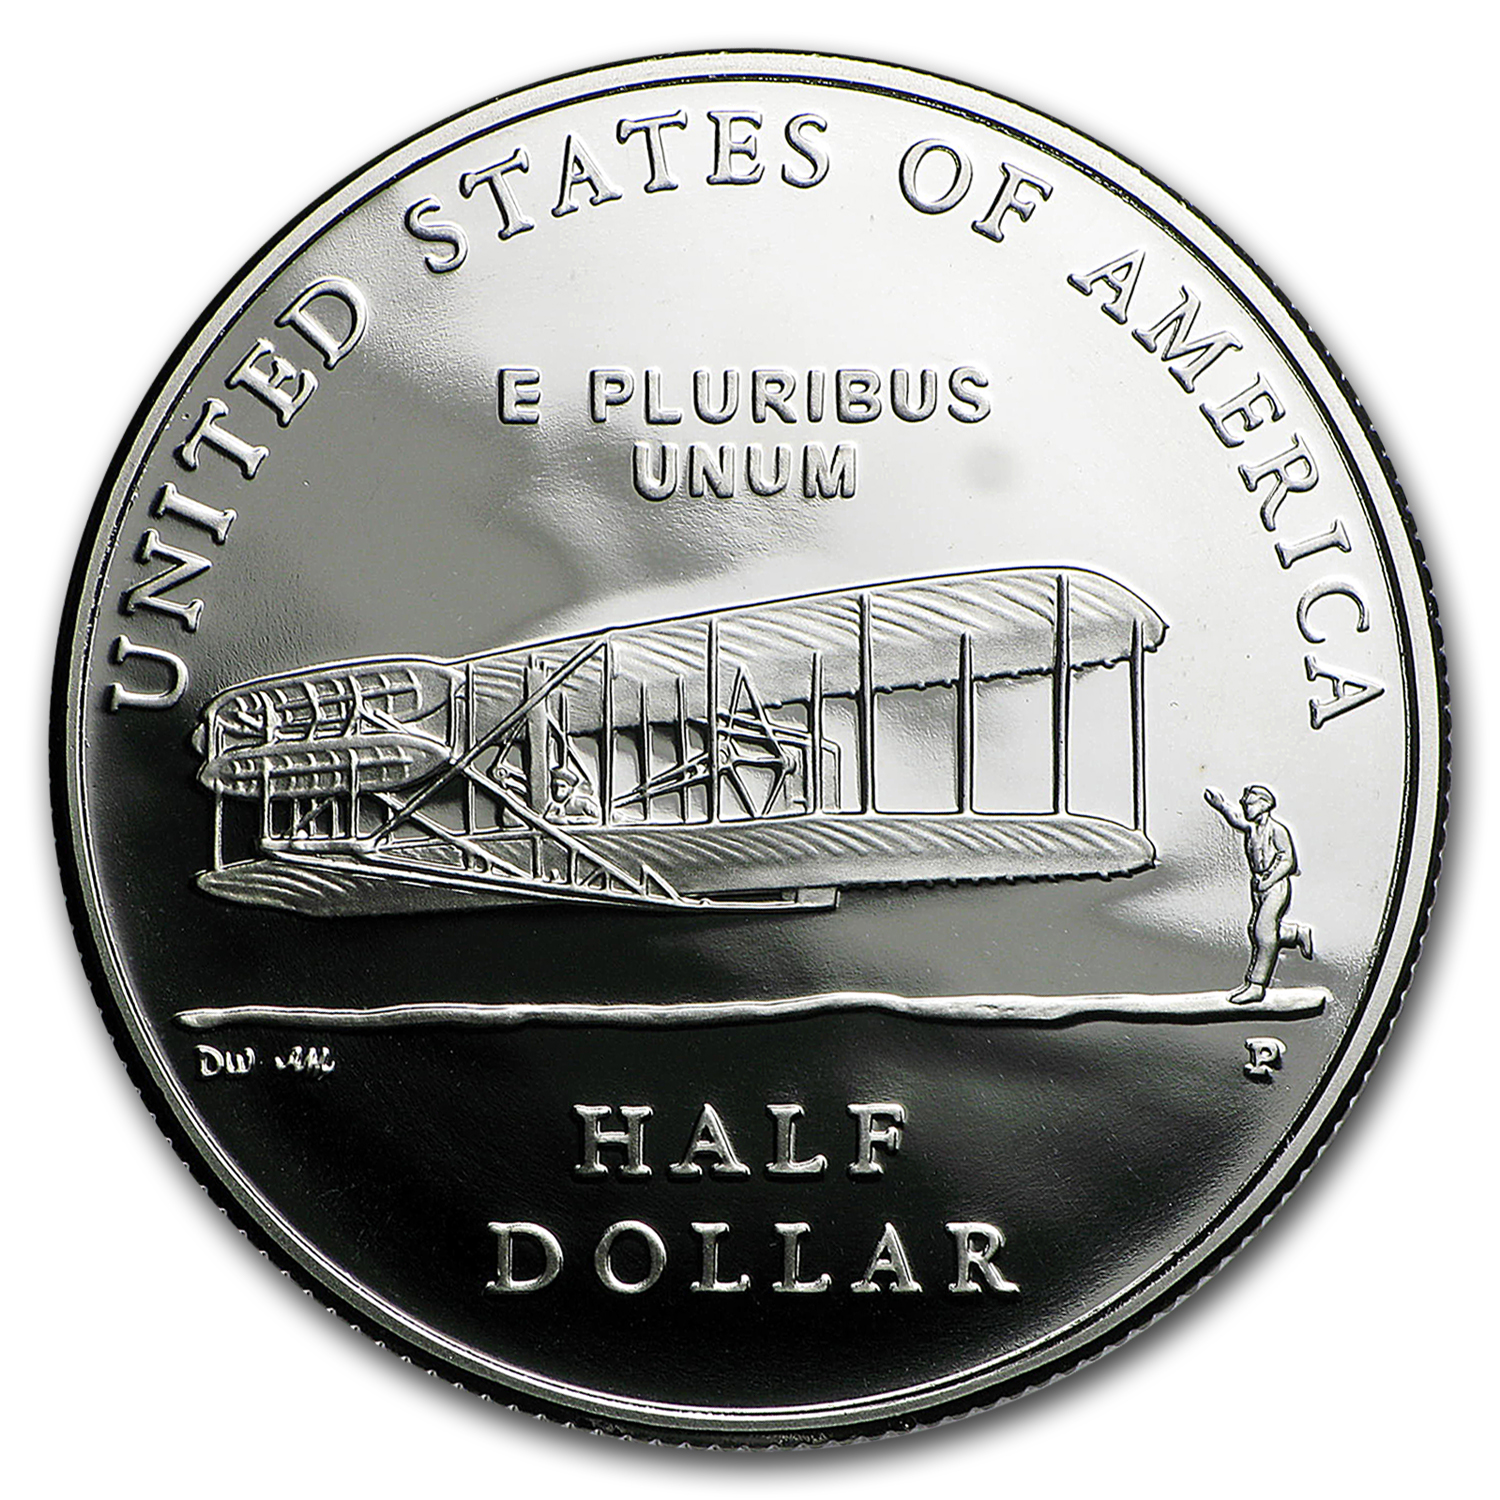 2003-P 1st Flight Cent'nial 1/2 Dollar Clad Commem BU (Capsule)